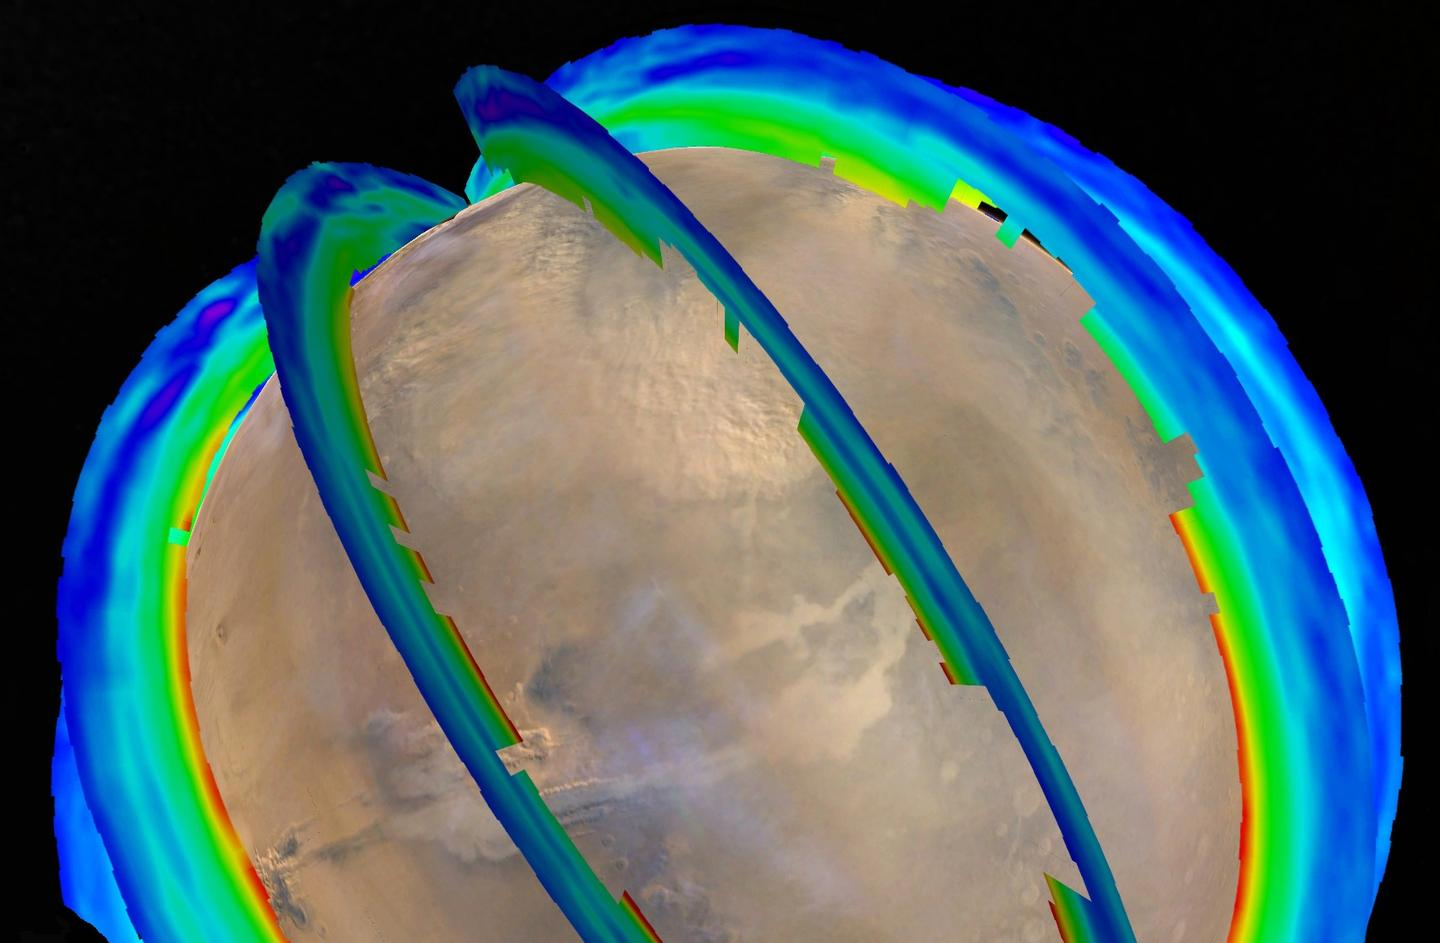 NASA image displaying temperature data as curtains overlaid on an image of Mars, captured as a dust storm obscured the Acidalia Planitia region of northern Mars